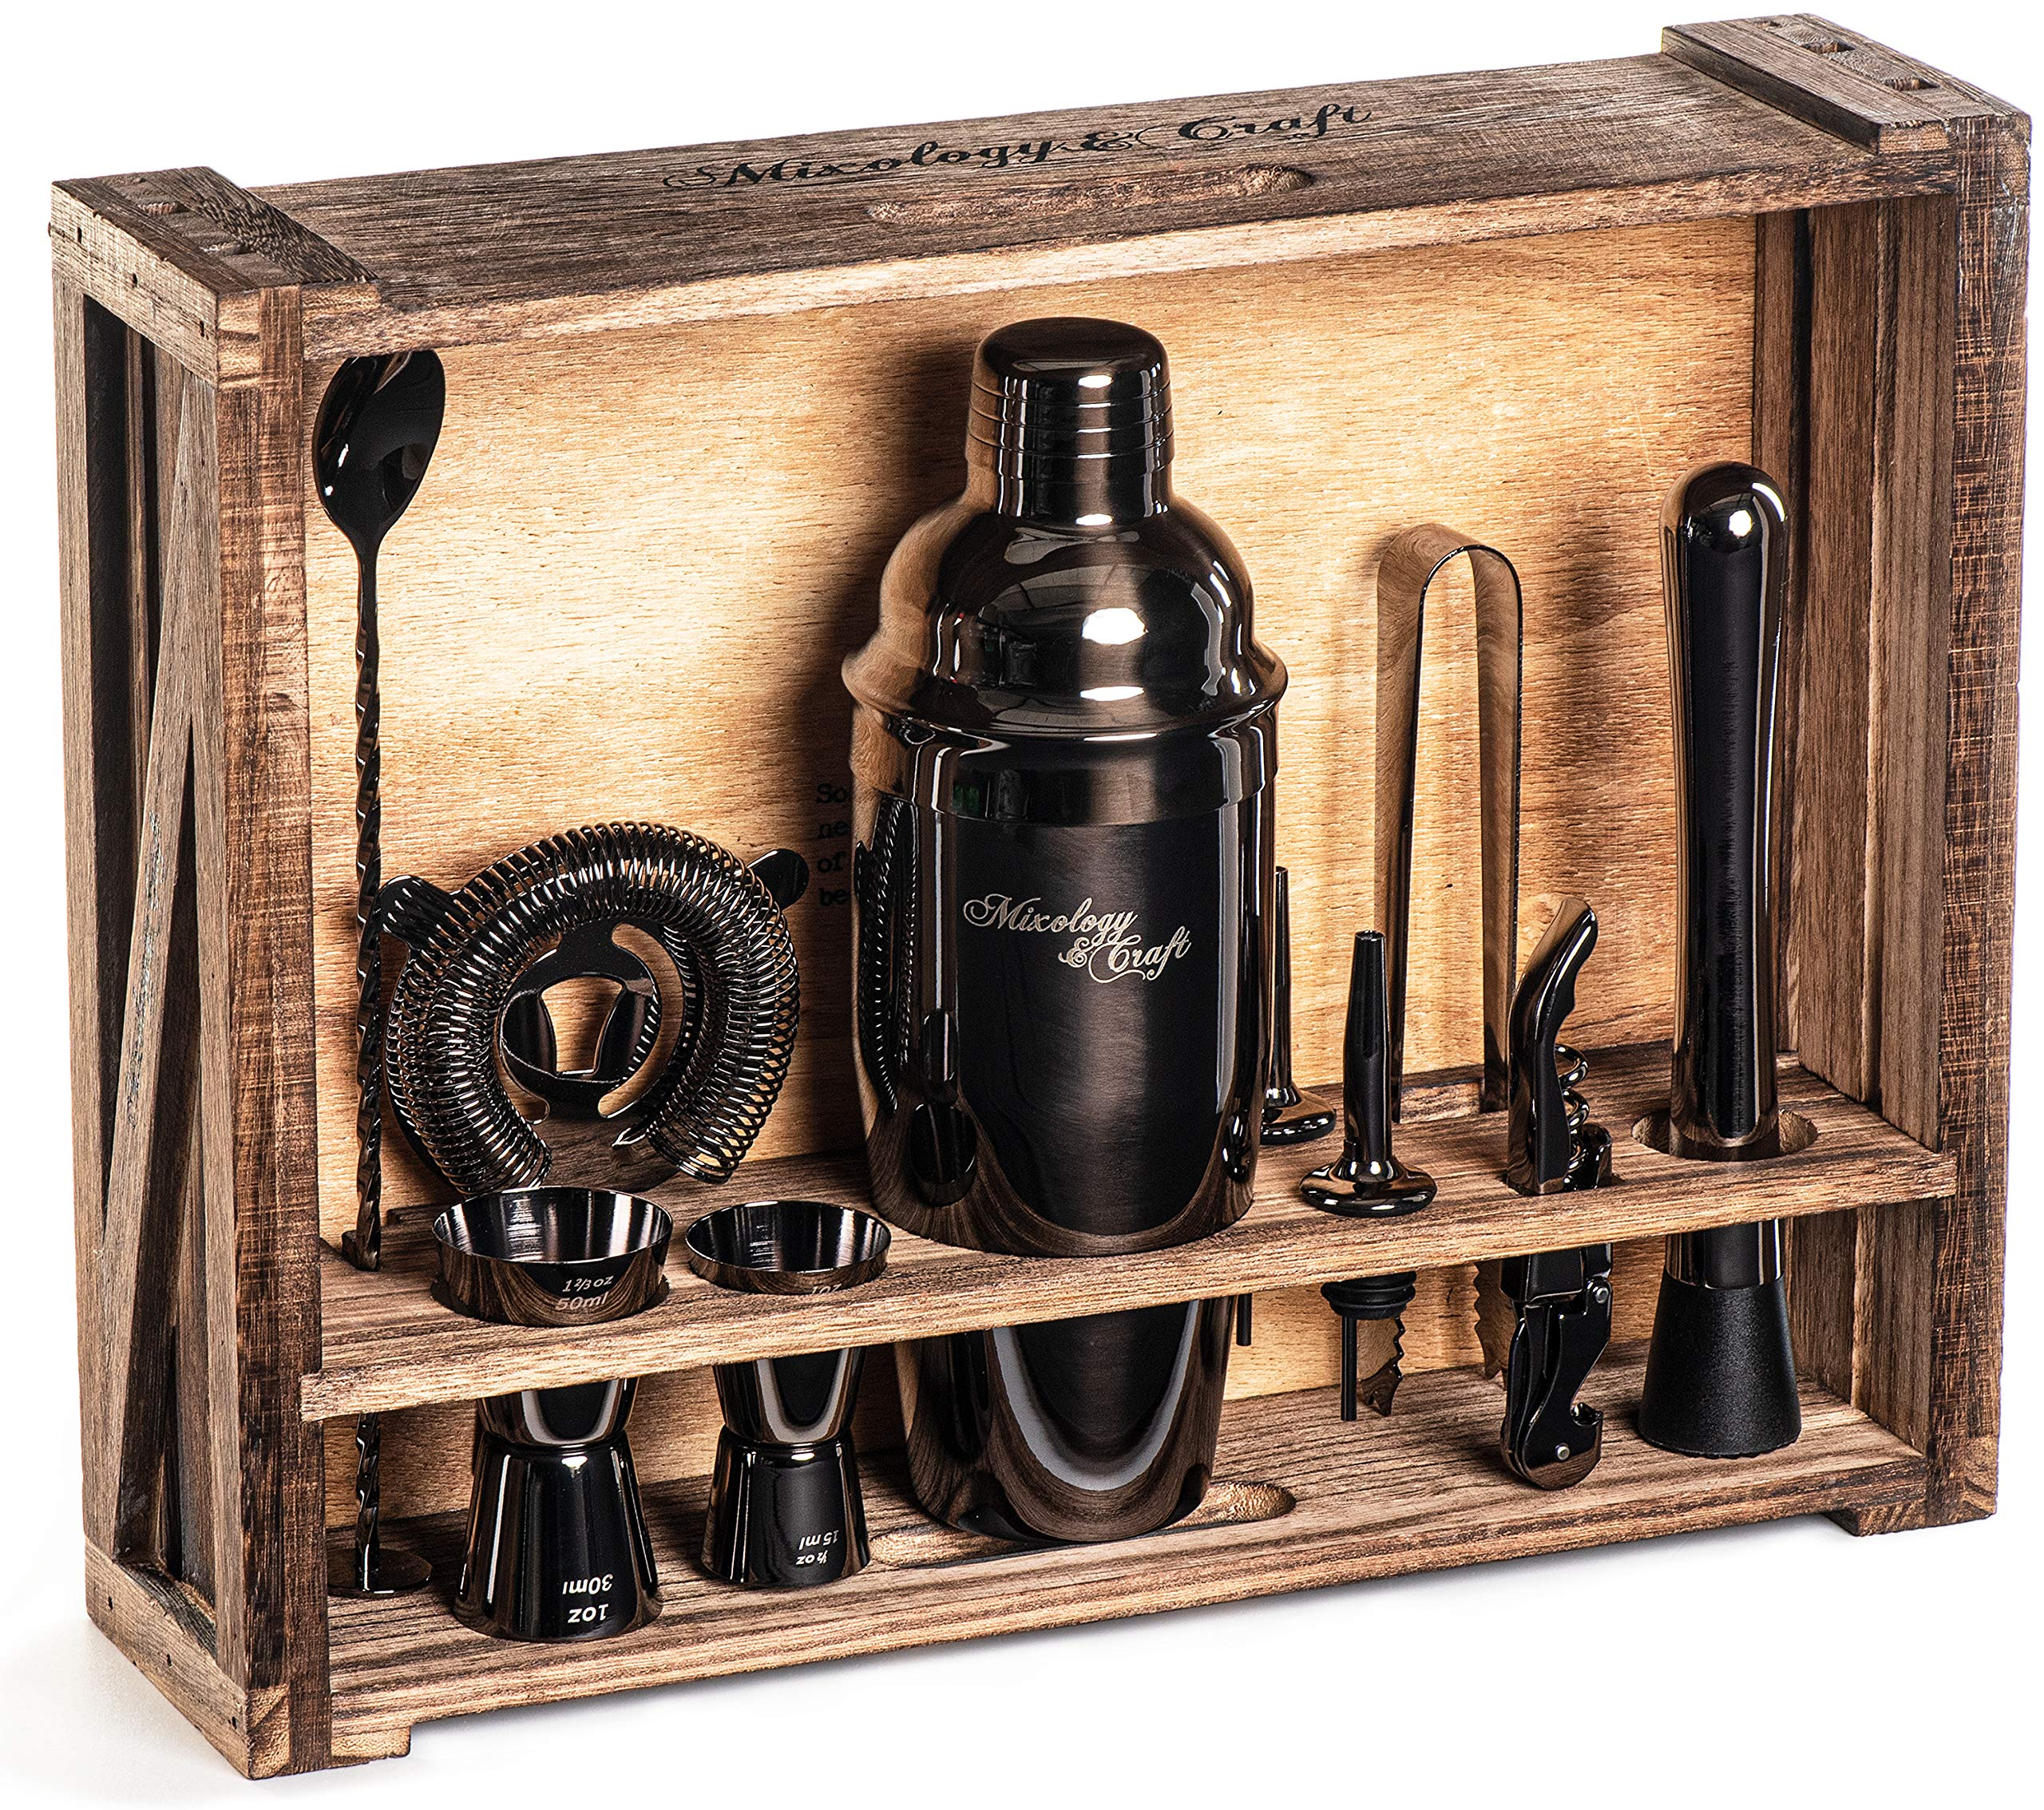 Mixology Bartender Kit: 11-Piece Black Bar Set Cocktail Shaker Set with Rustic Wood Stand | Perfect Home Bartending Kit with Gun Metal Bar Tools and Martini Shaker for Foolproof Drink Mixing by Mixology & Craft